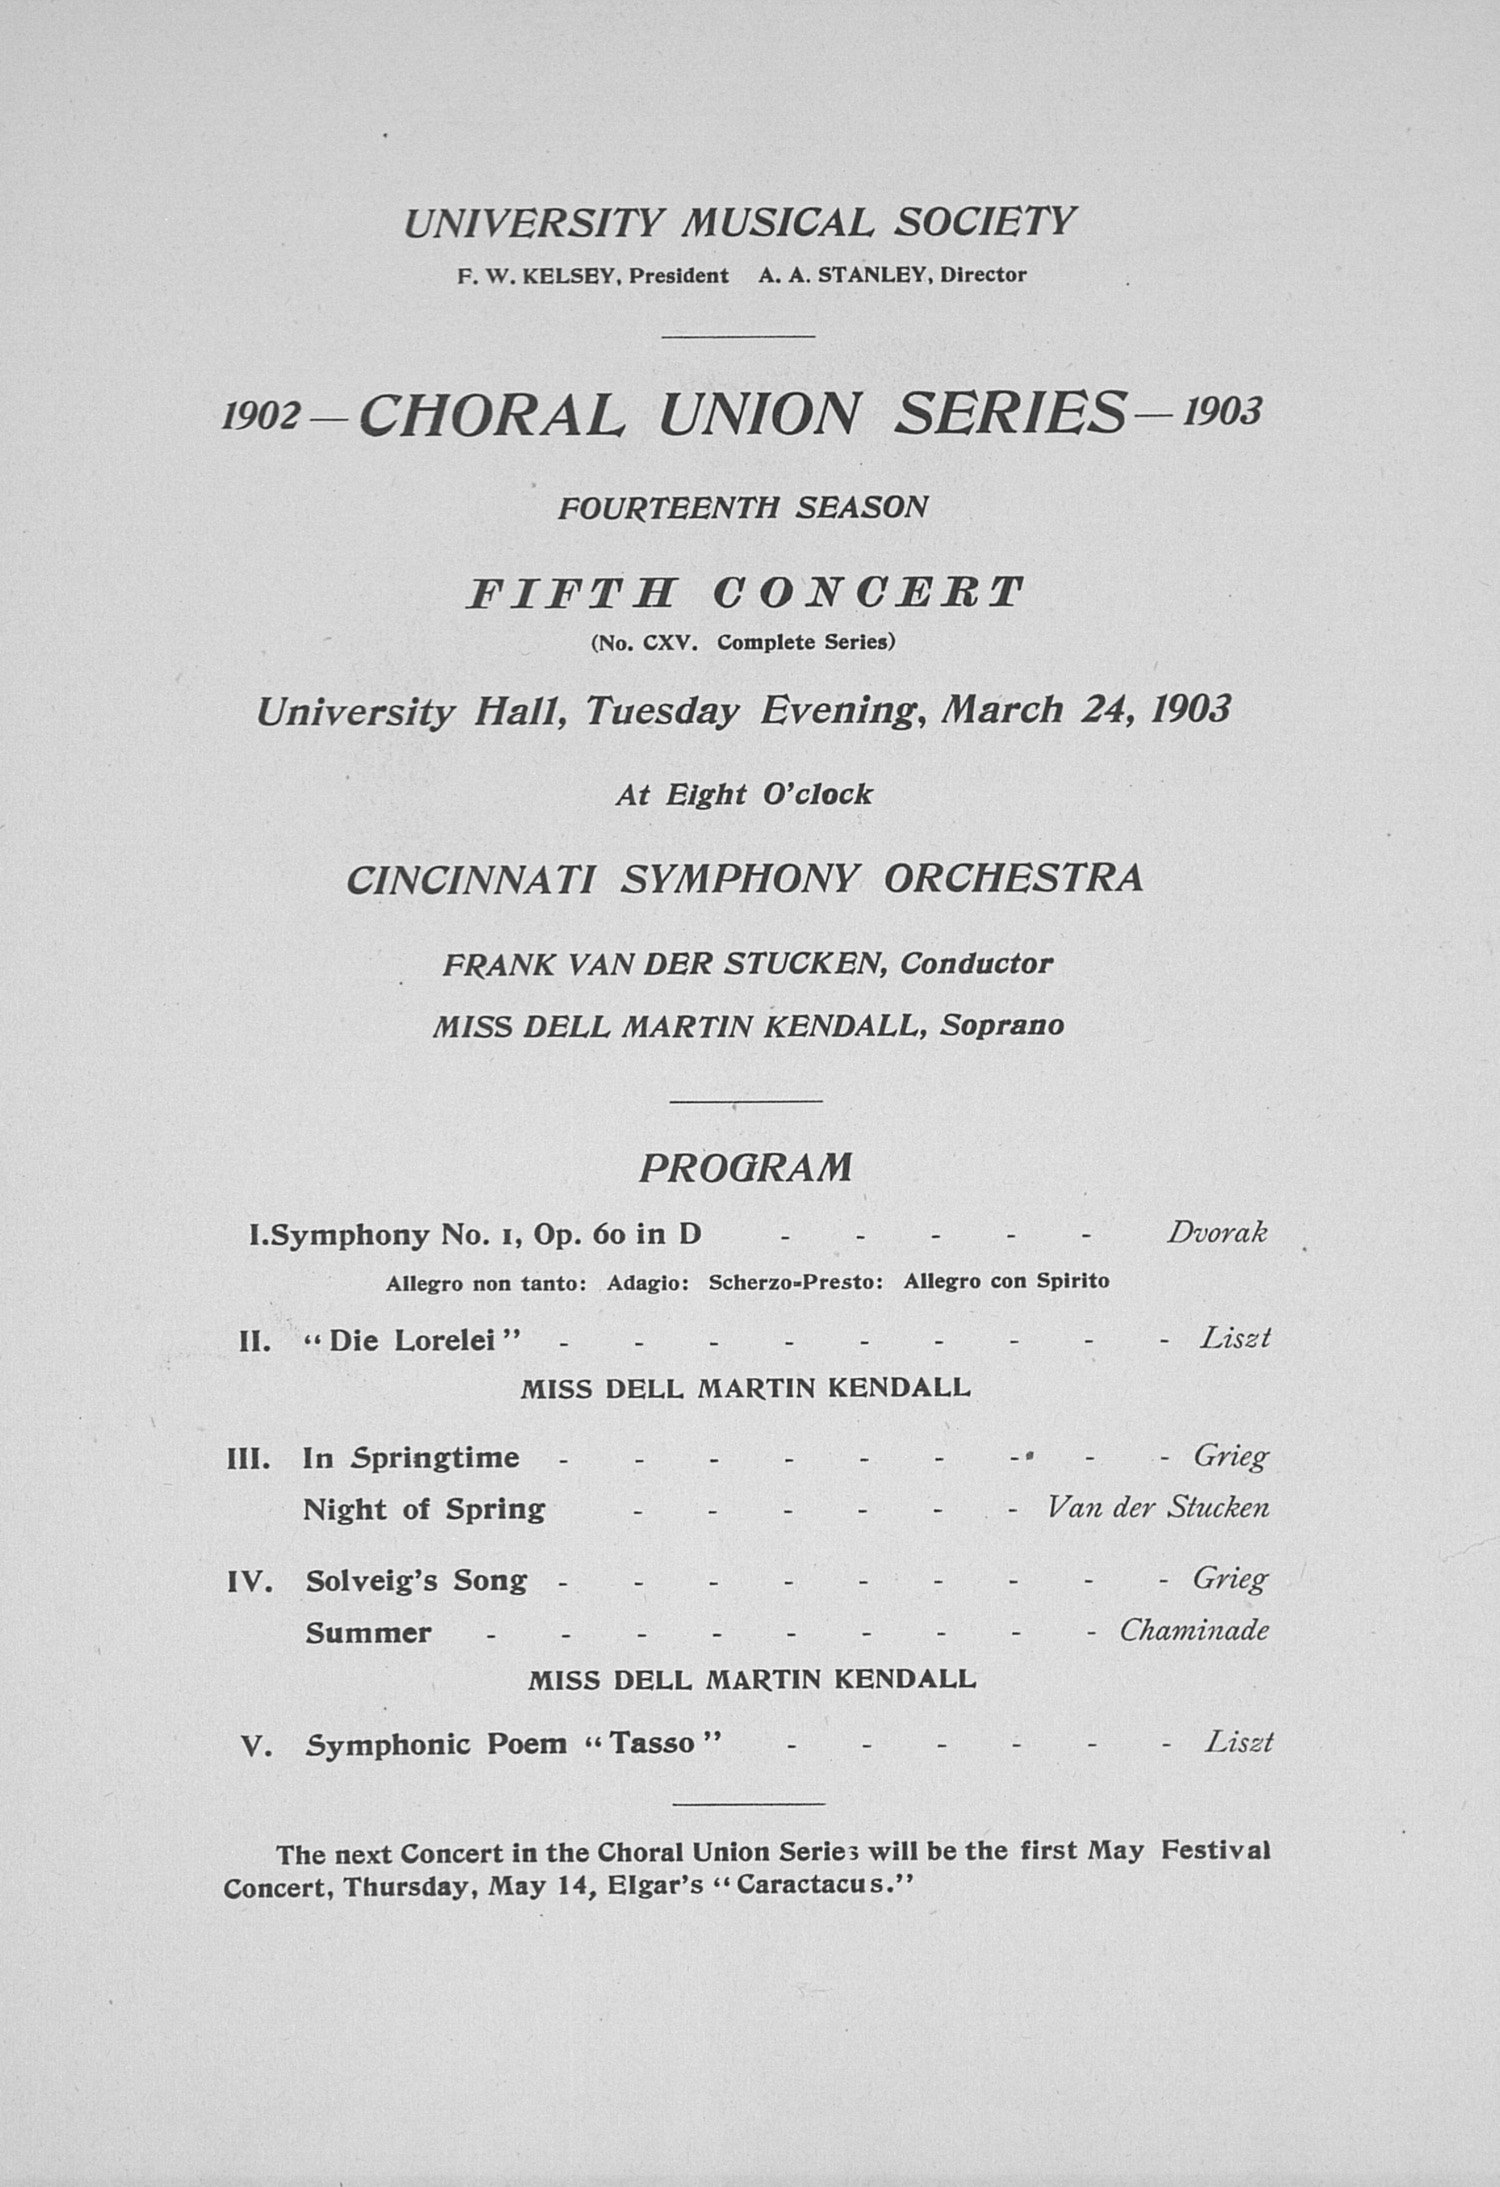 UMS Concert Program, March 24, 1903: Choral Union Series -- Cincinnati Symphony Orchestra image